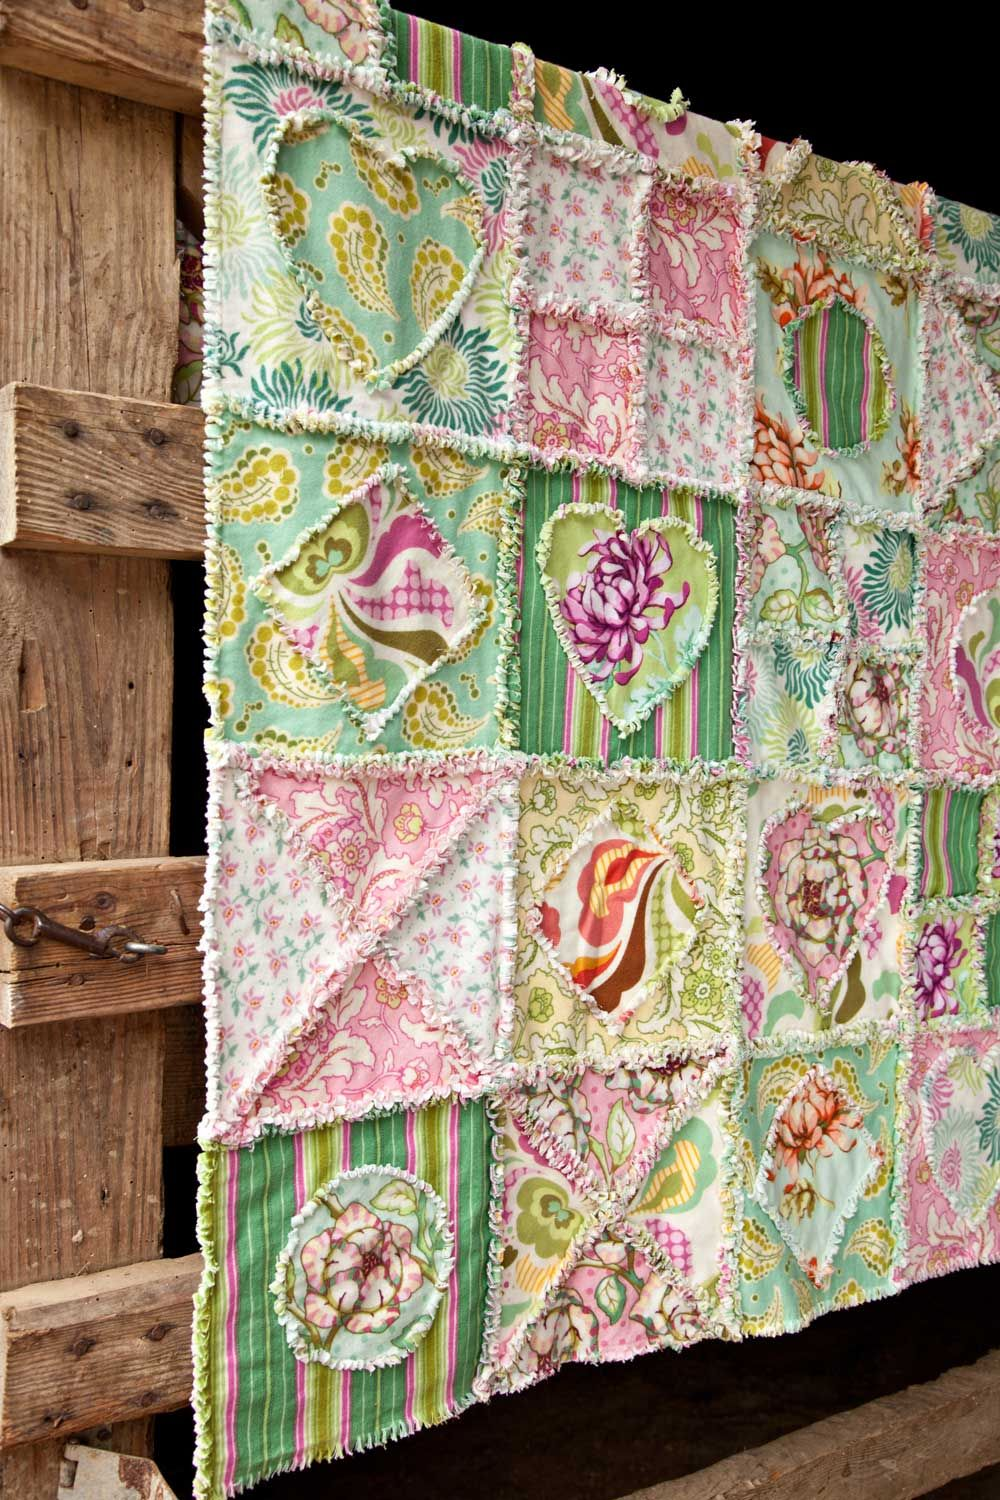 Fun Rag Quilt And Many Free Quilt Patterns From This Site Flannel Quilt Patterns Rag Quilt Rag Quilt Patterns